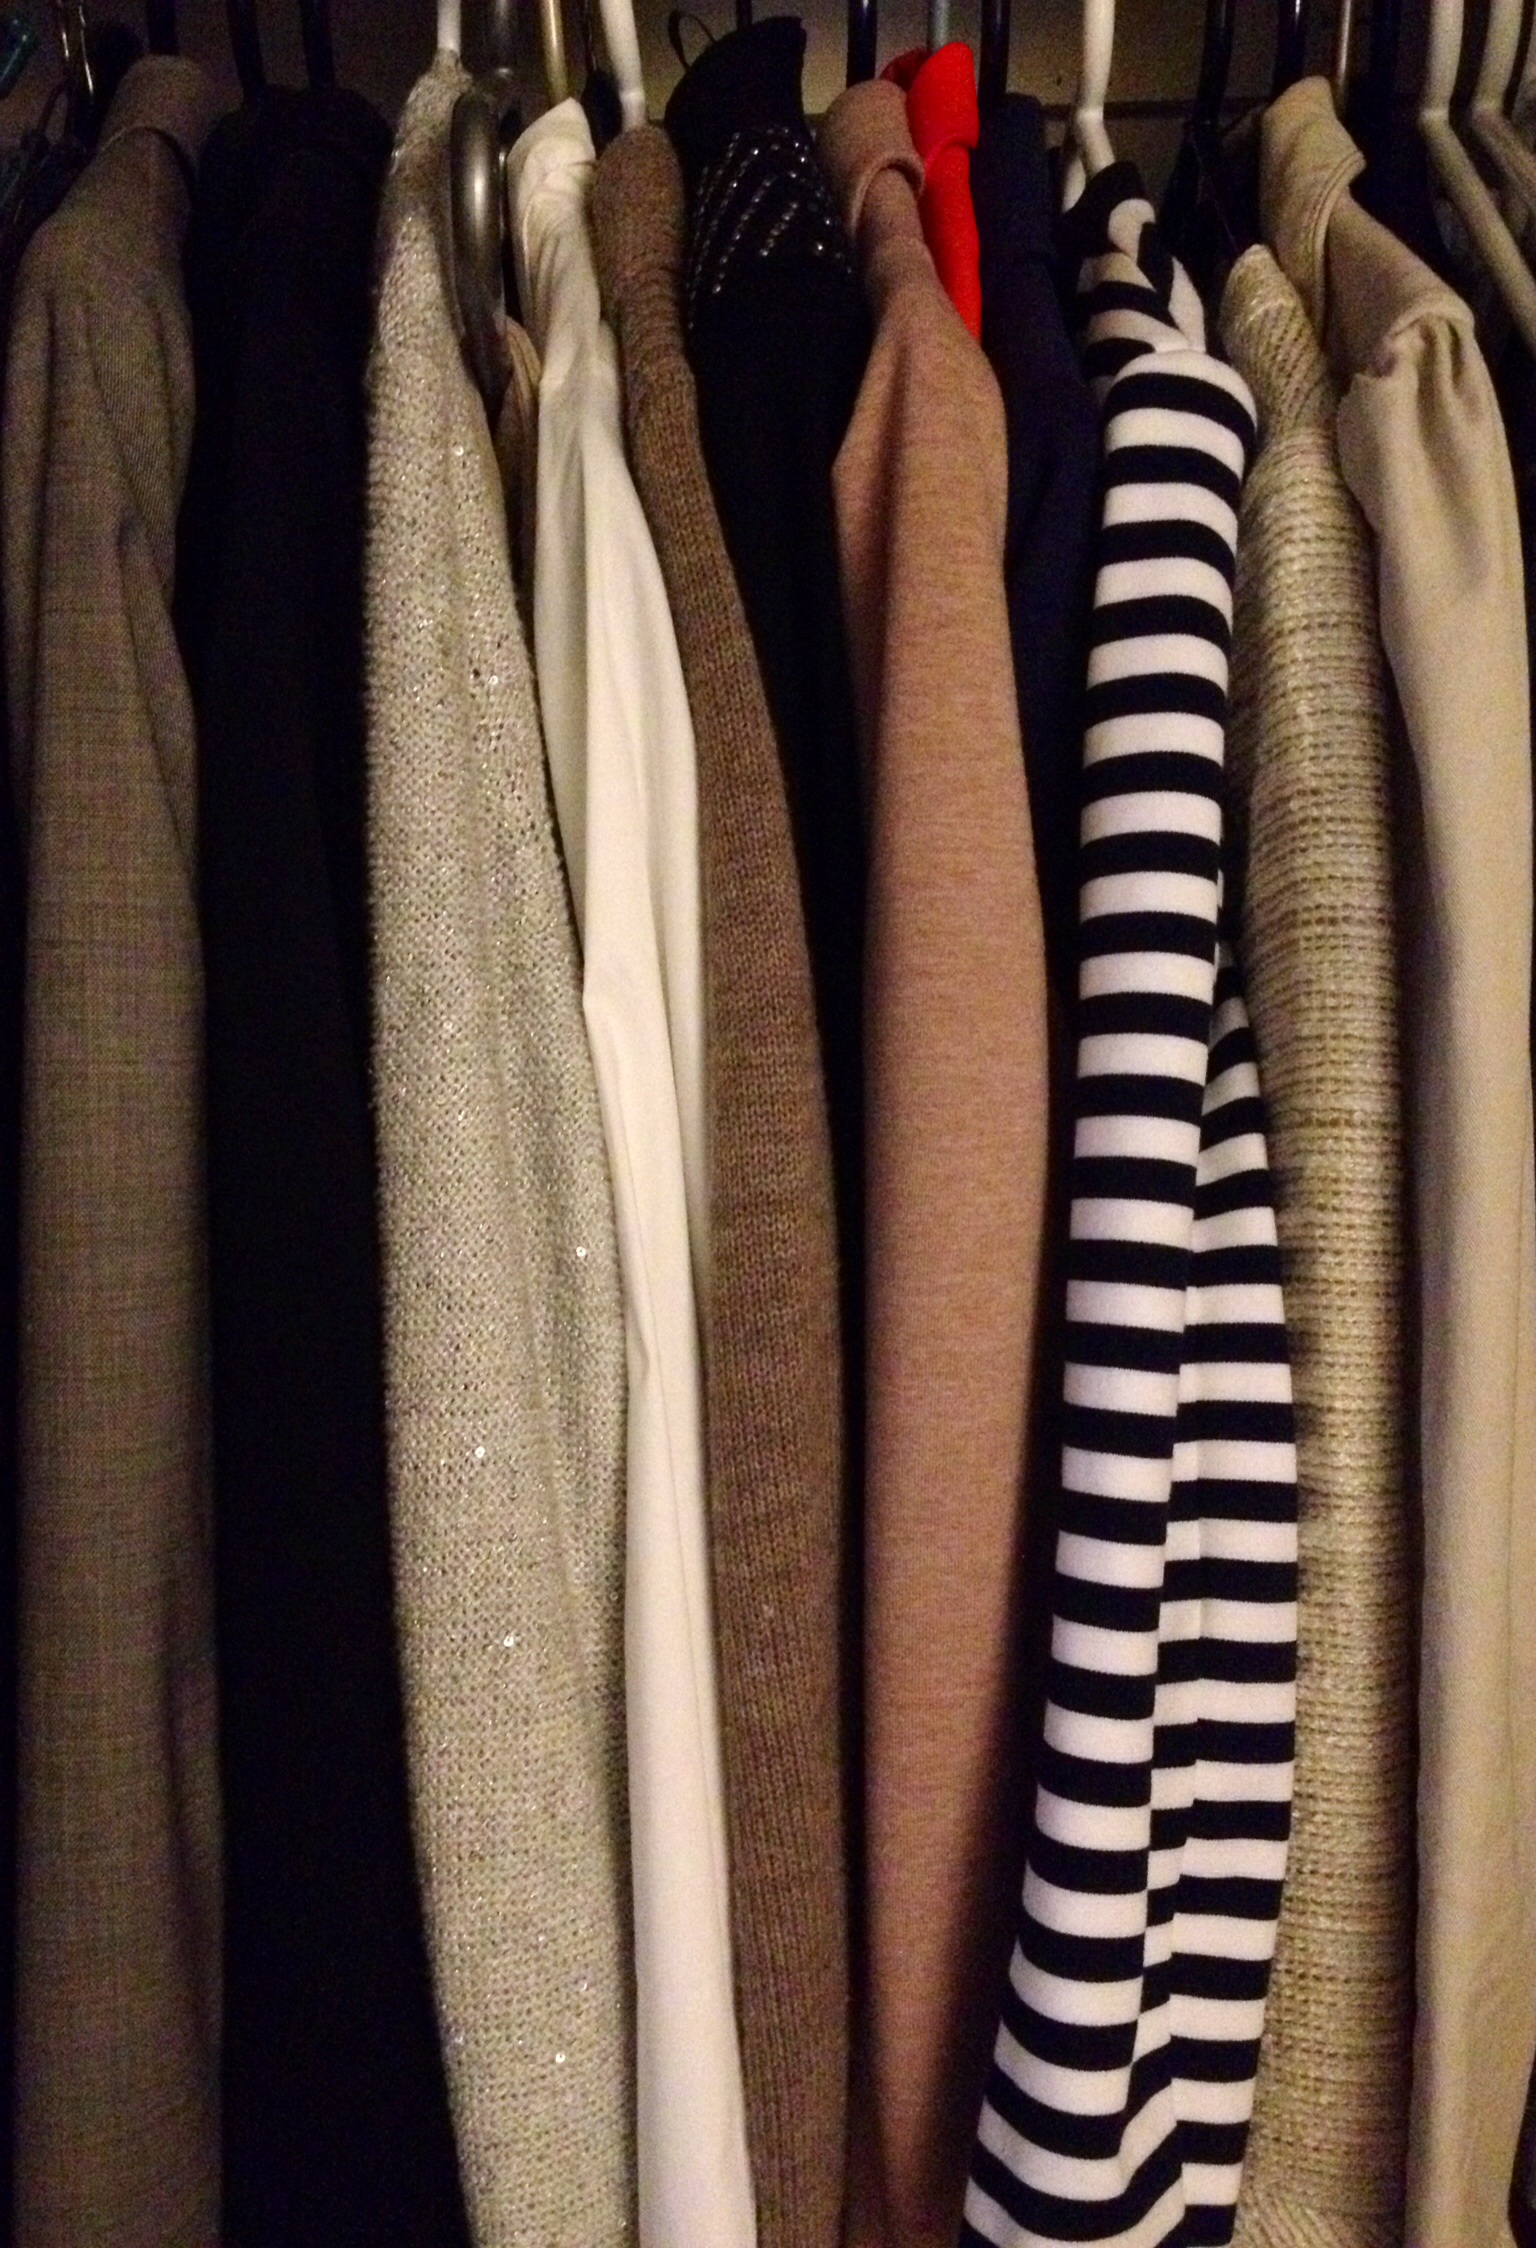 A Closet Full of Nothing to Wear